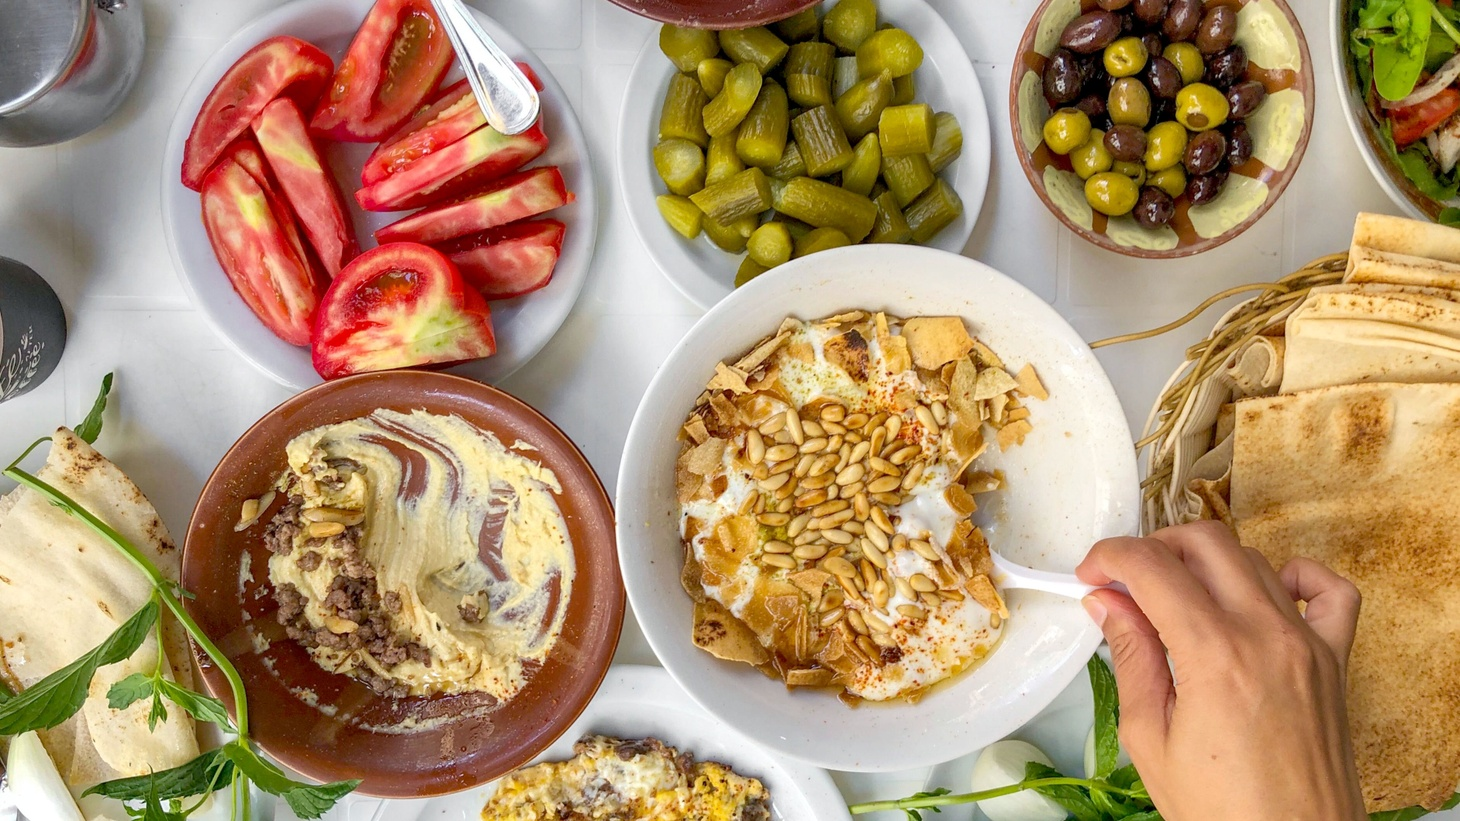 Bill Addison gives Good Food's Evan Kleiman a few of his trip's highlights, while recommending a few noteworthy Lebanese restaurants here in Los Angeles.